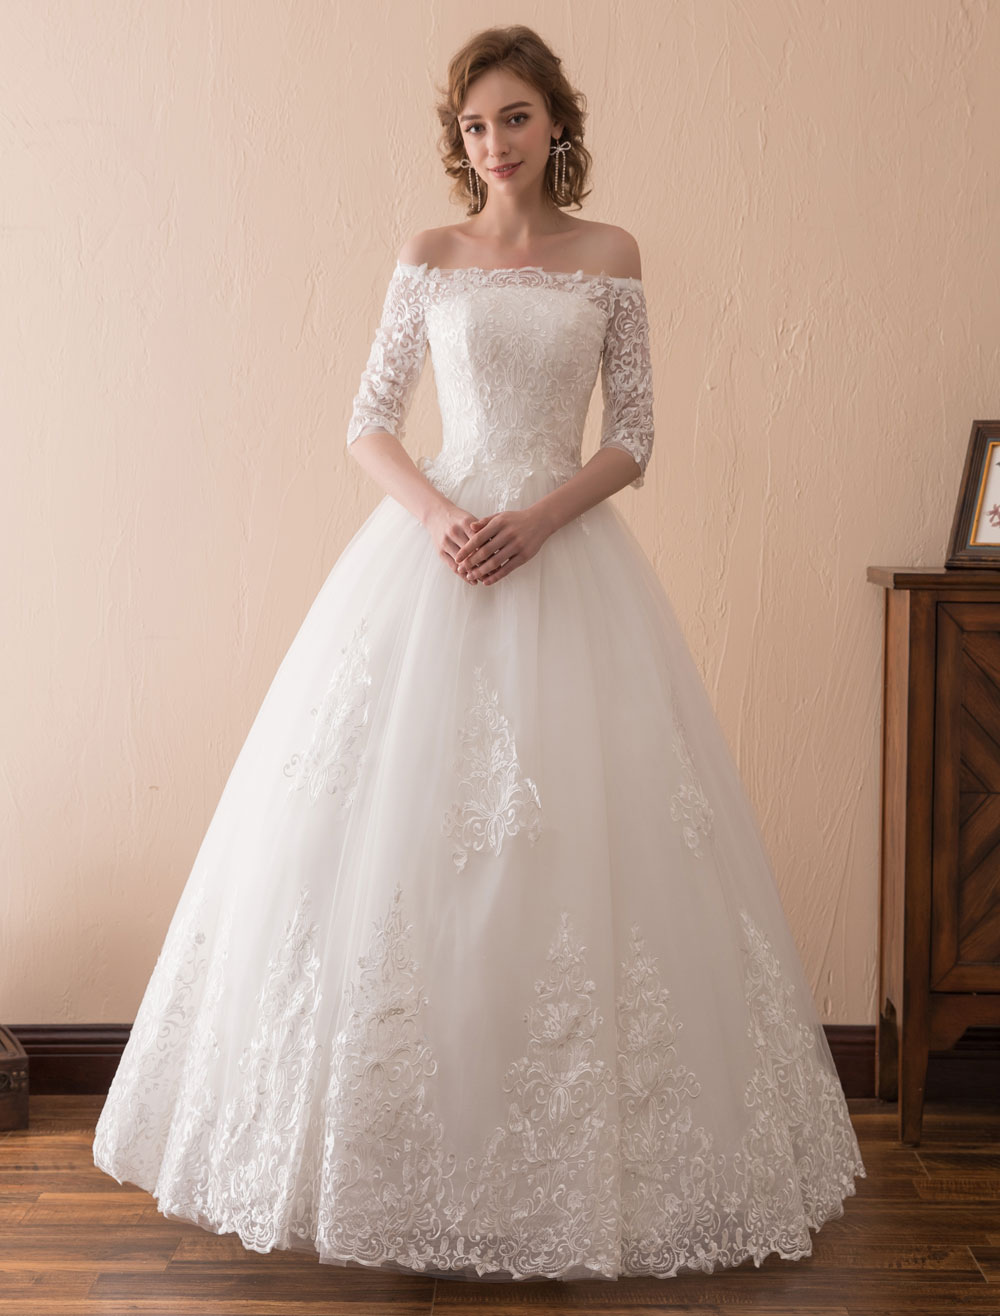 eb43f1dd21 ... Half Sleeve Floor Length Bridal Dress-. 123. 45%OFF. Color Ivory